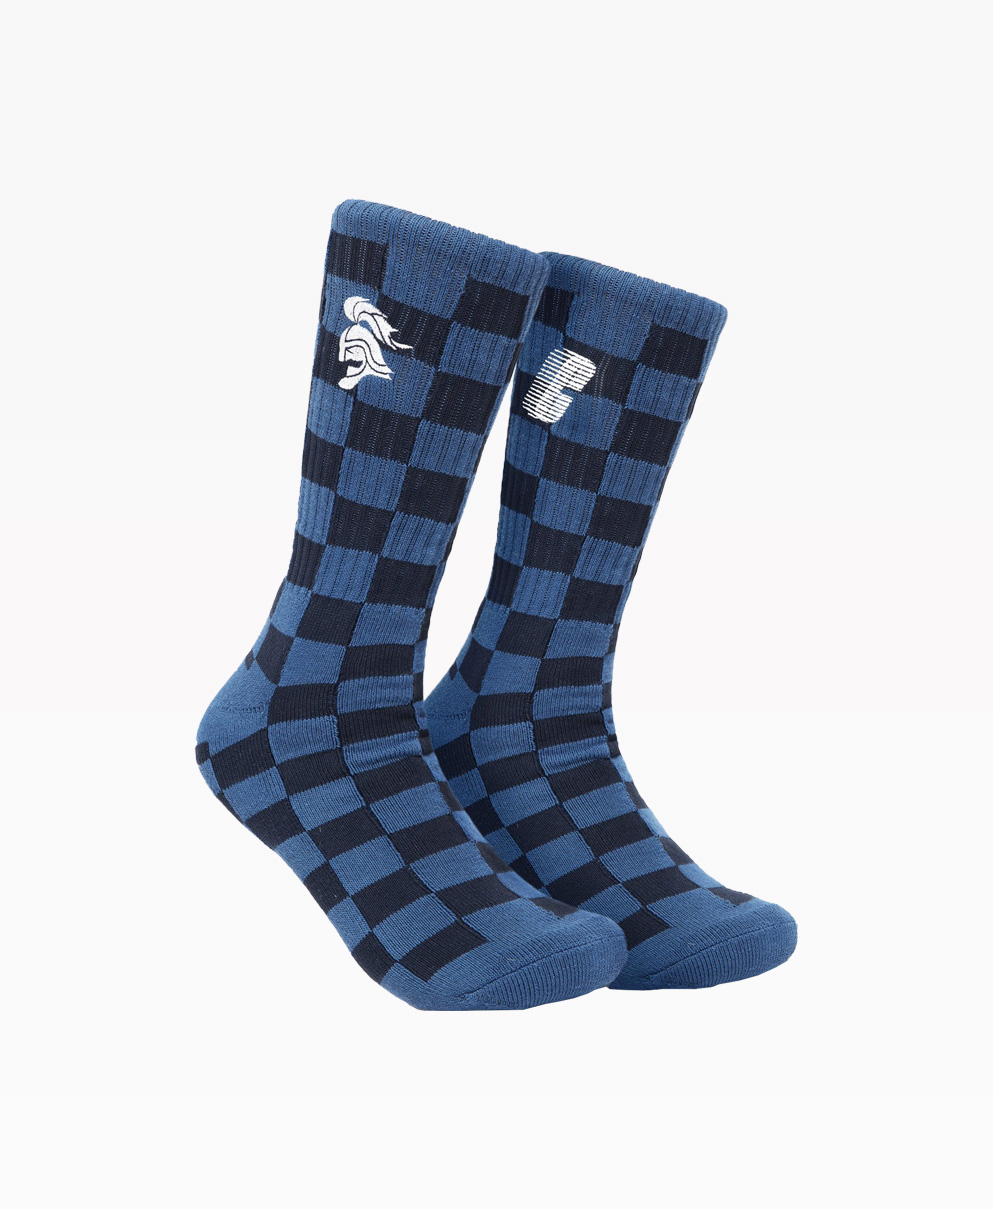 Chrystie Swfc 10th Anniversary Socks : Away Color